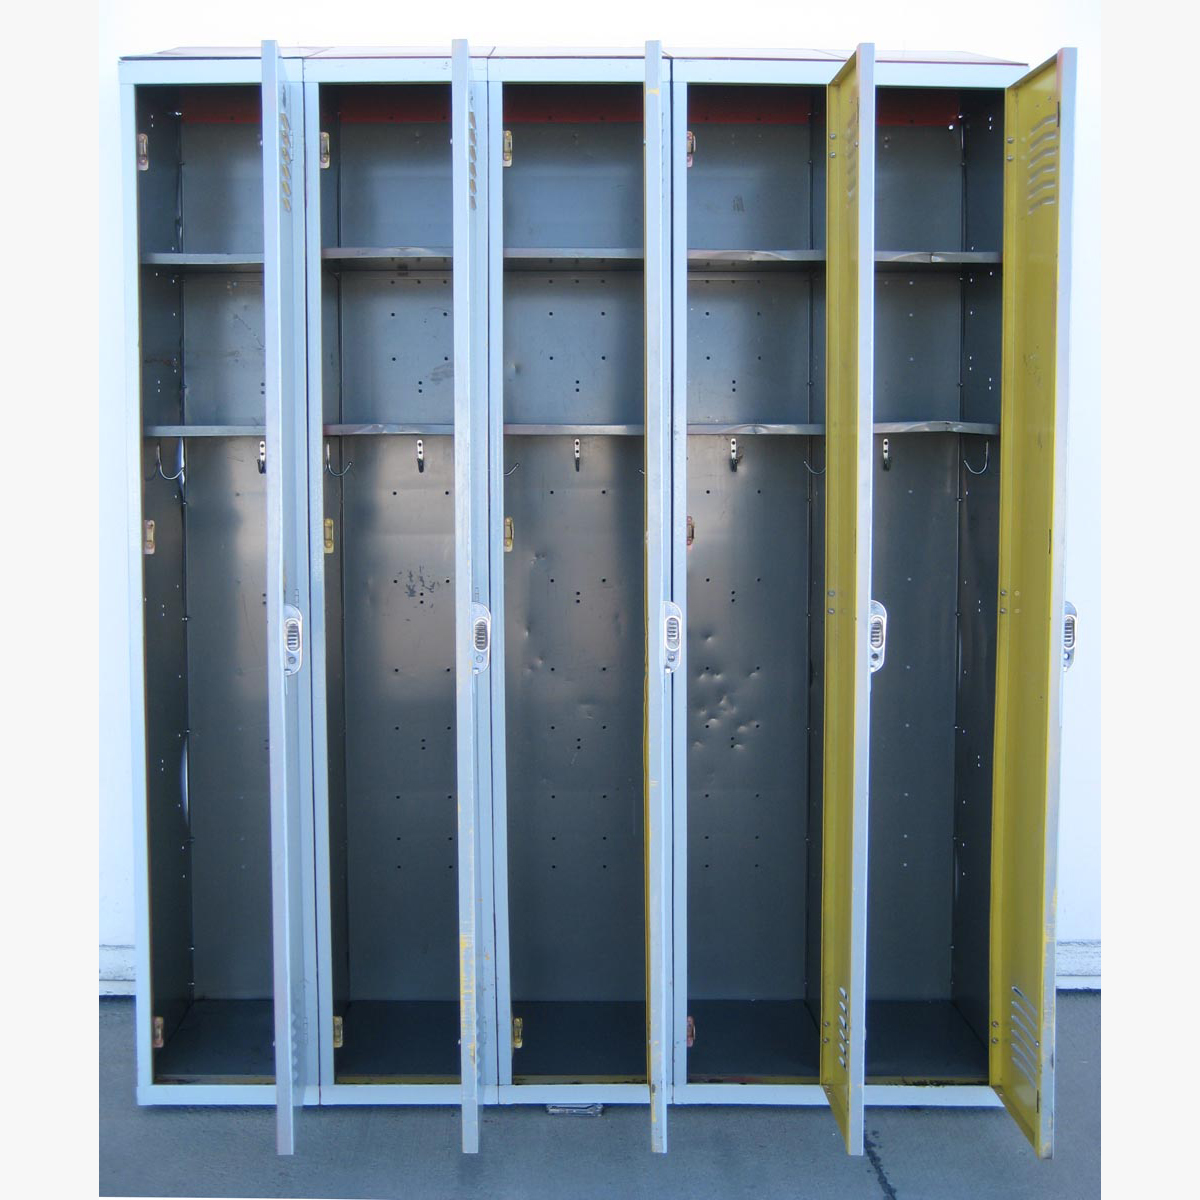 Used Lockers with Sloped Topsimage 4 image 4